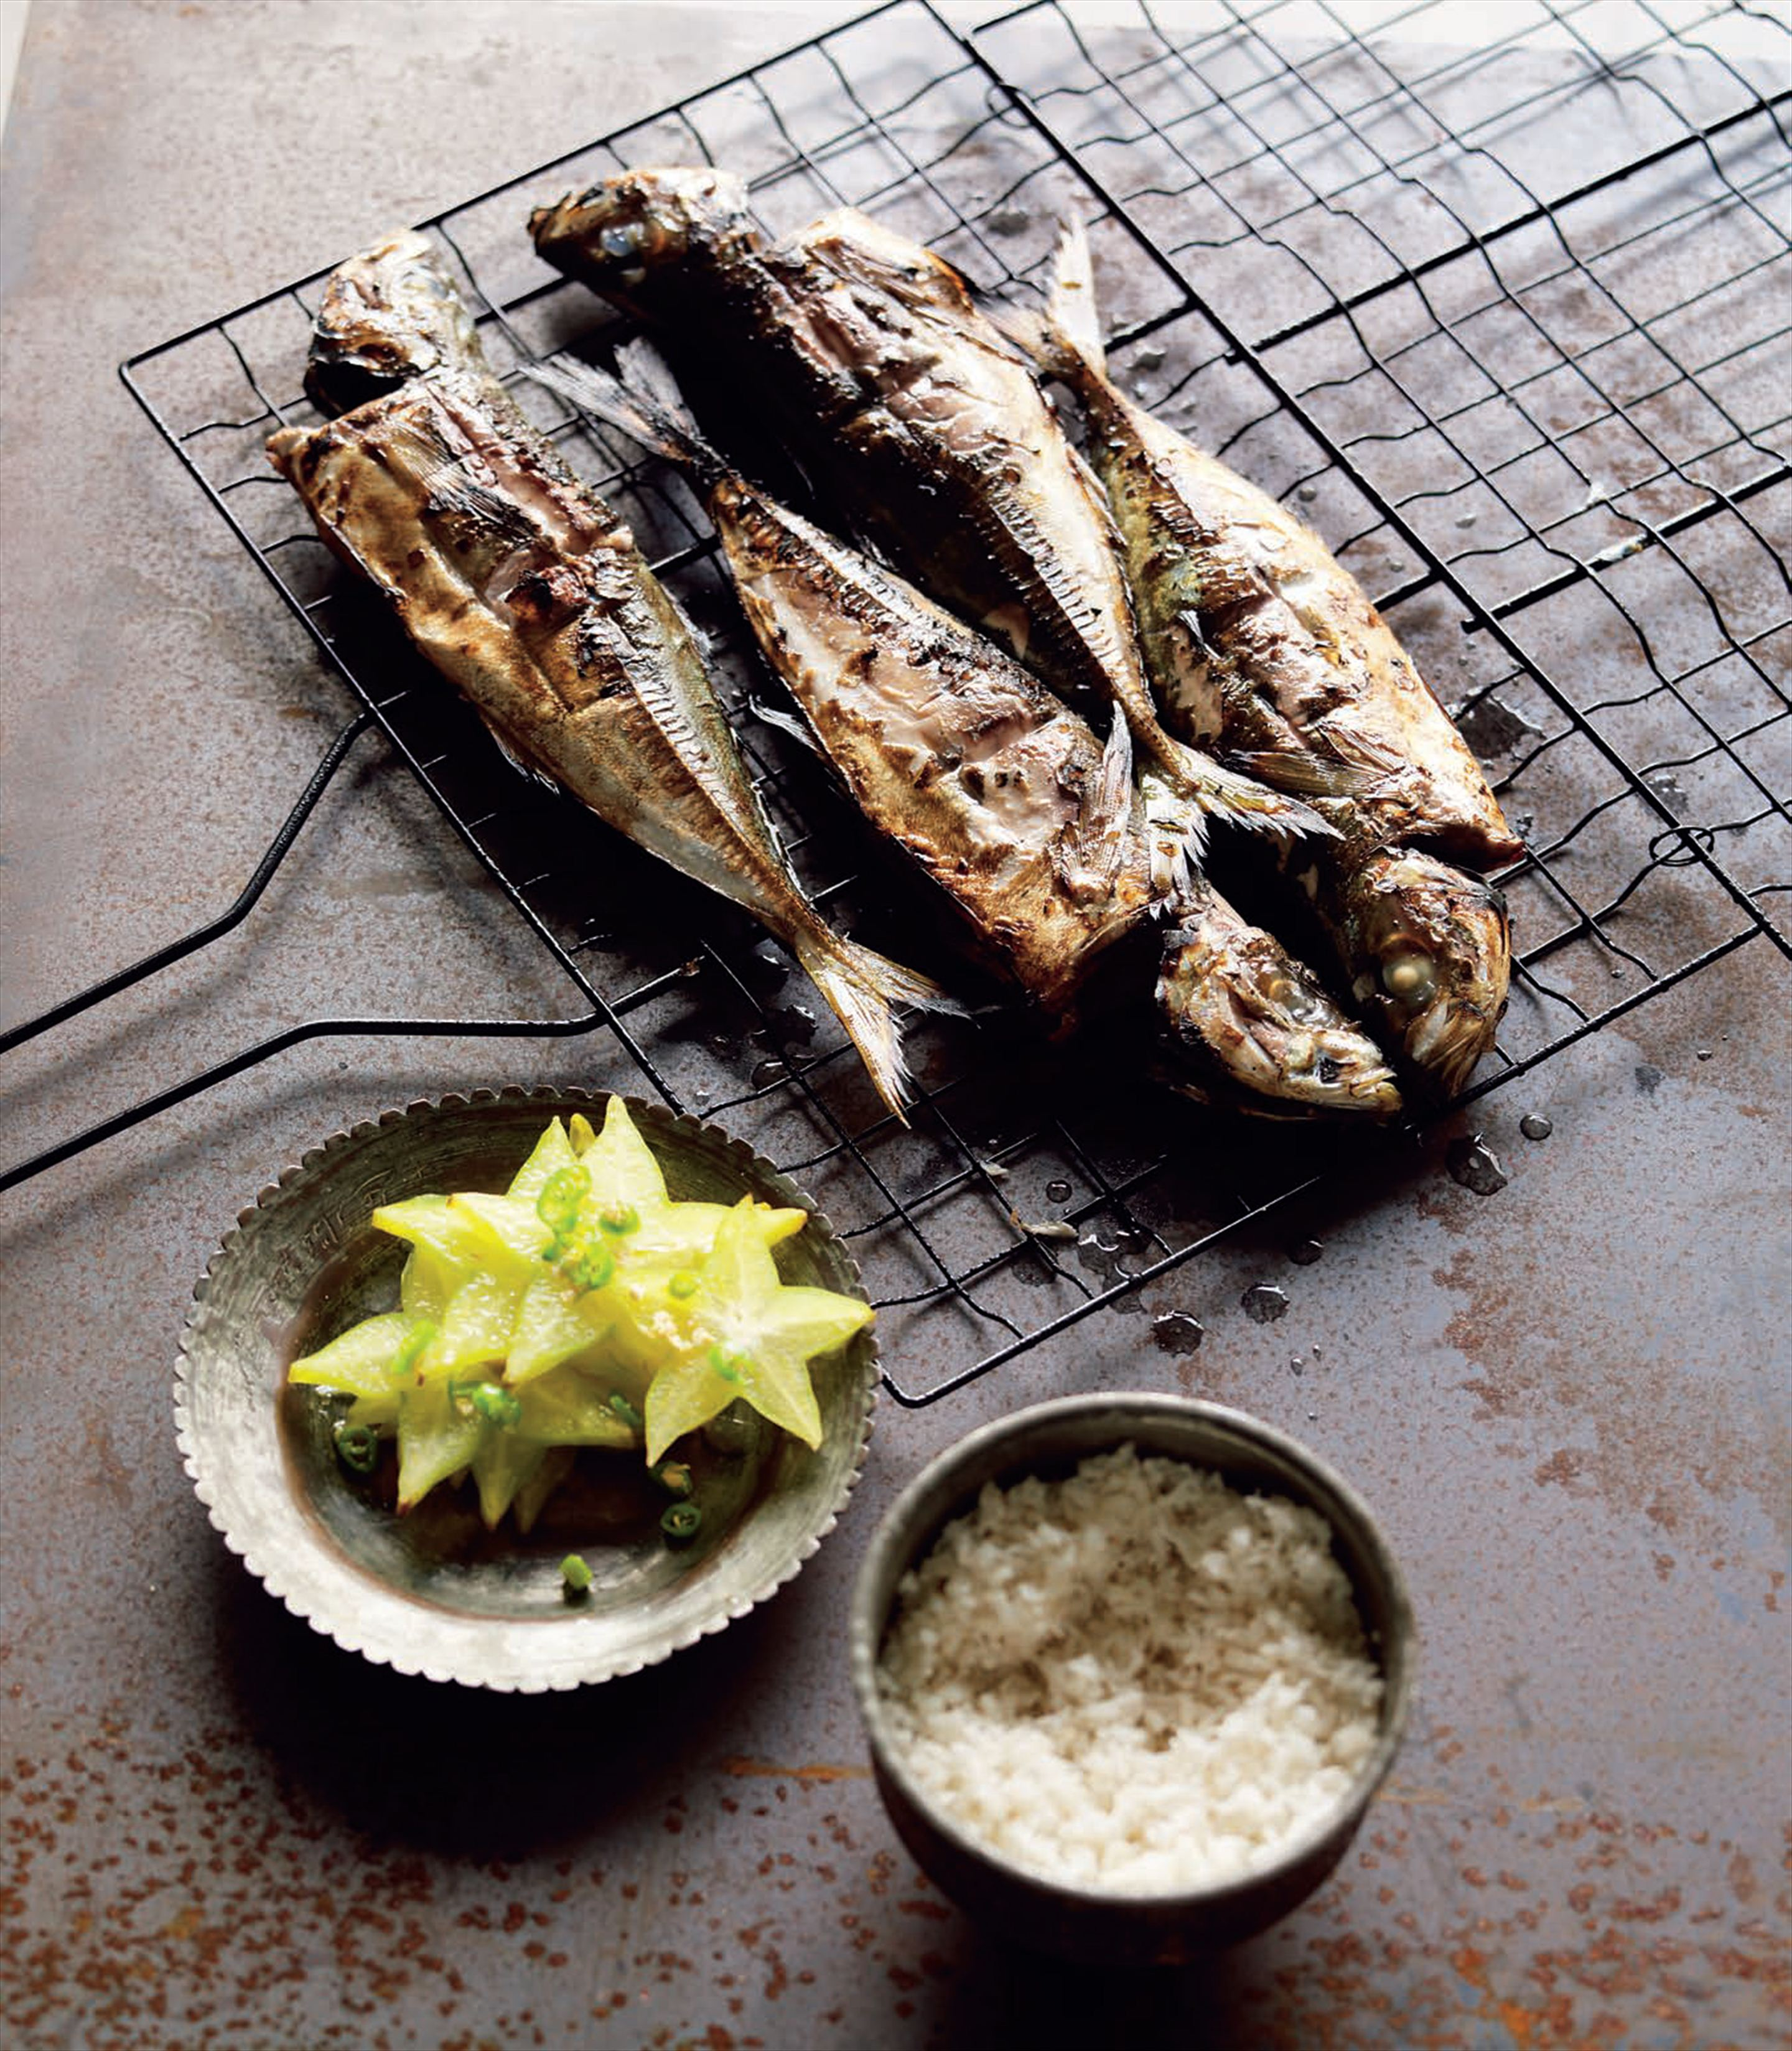 Grilled yellowtail with cassava rice and star fruit salad